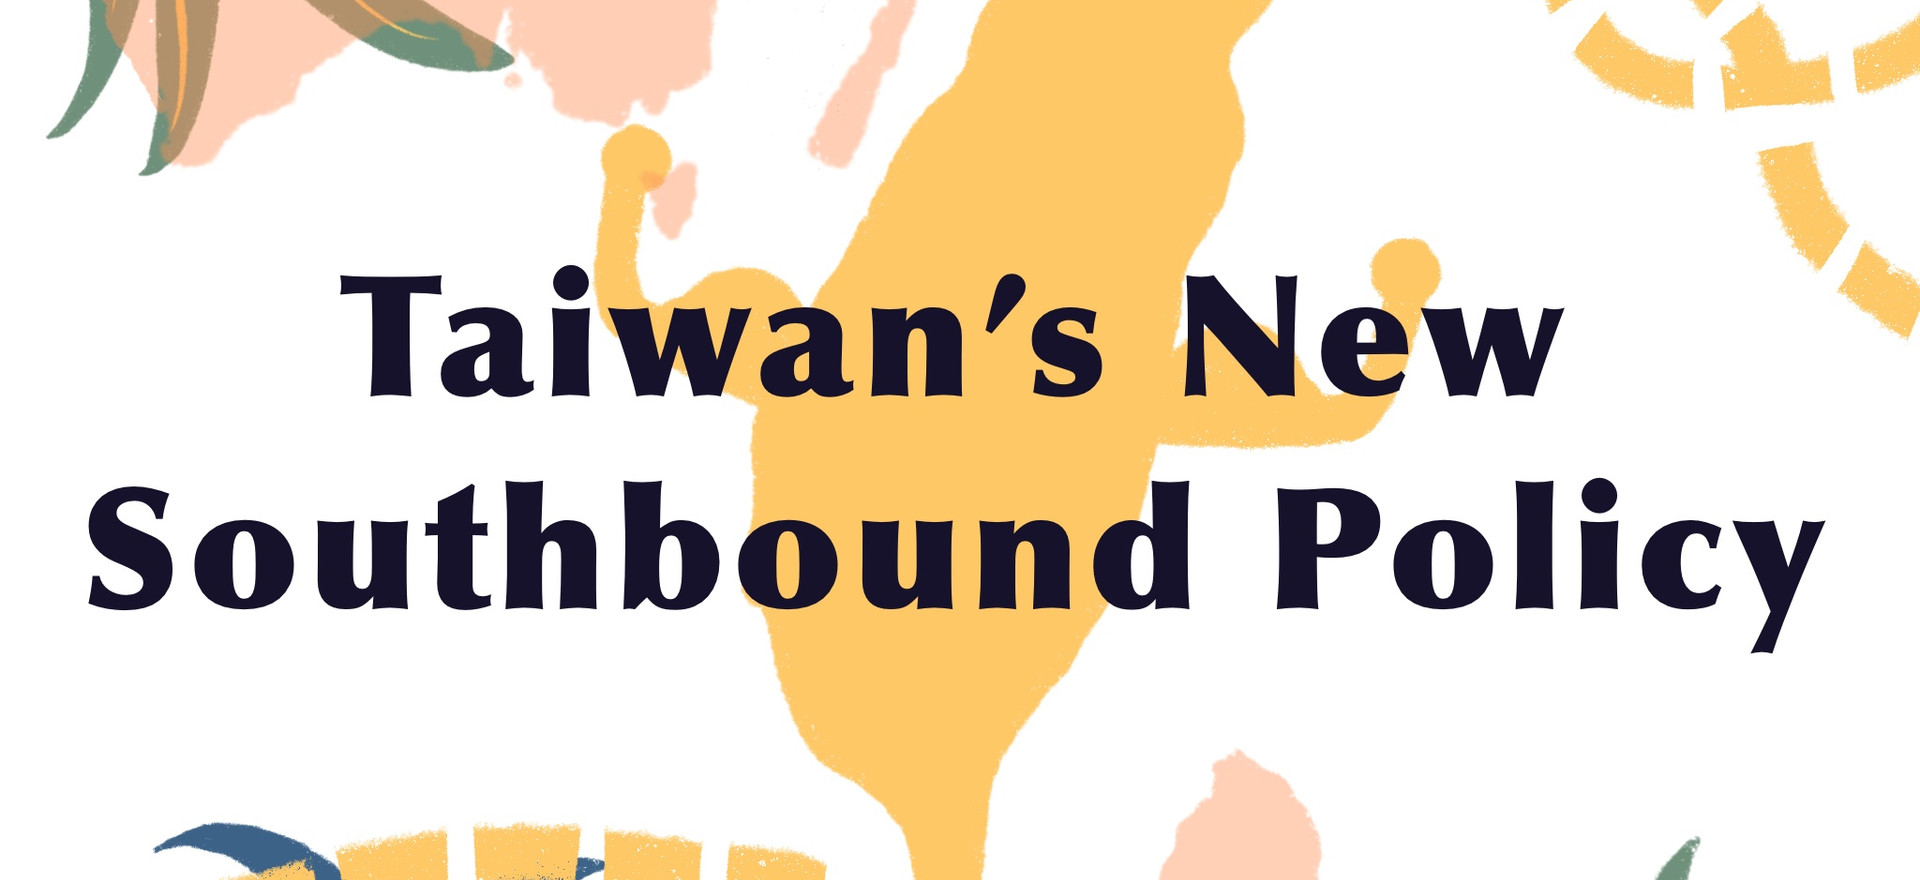 Taiwan's New Southbound Policy